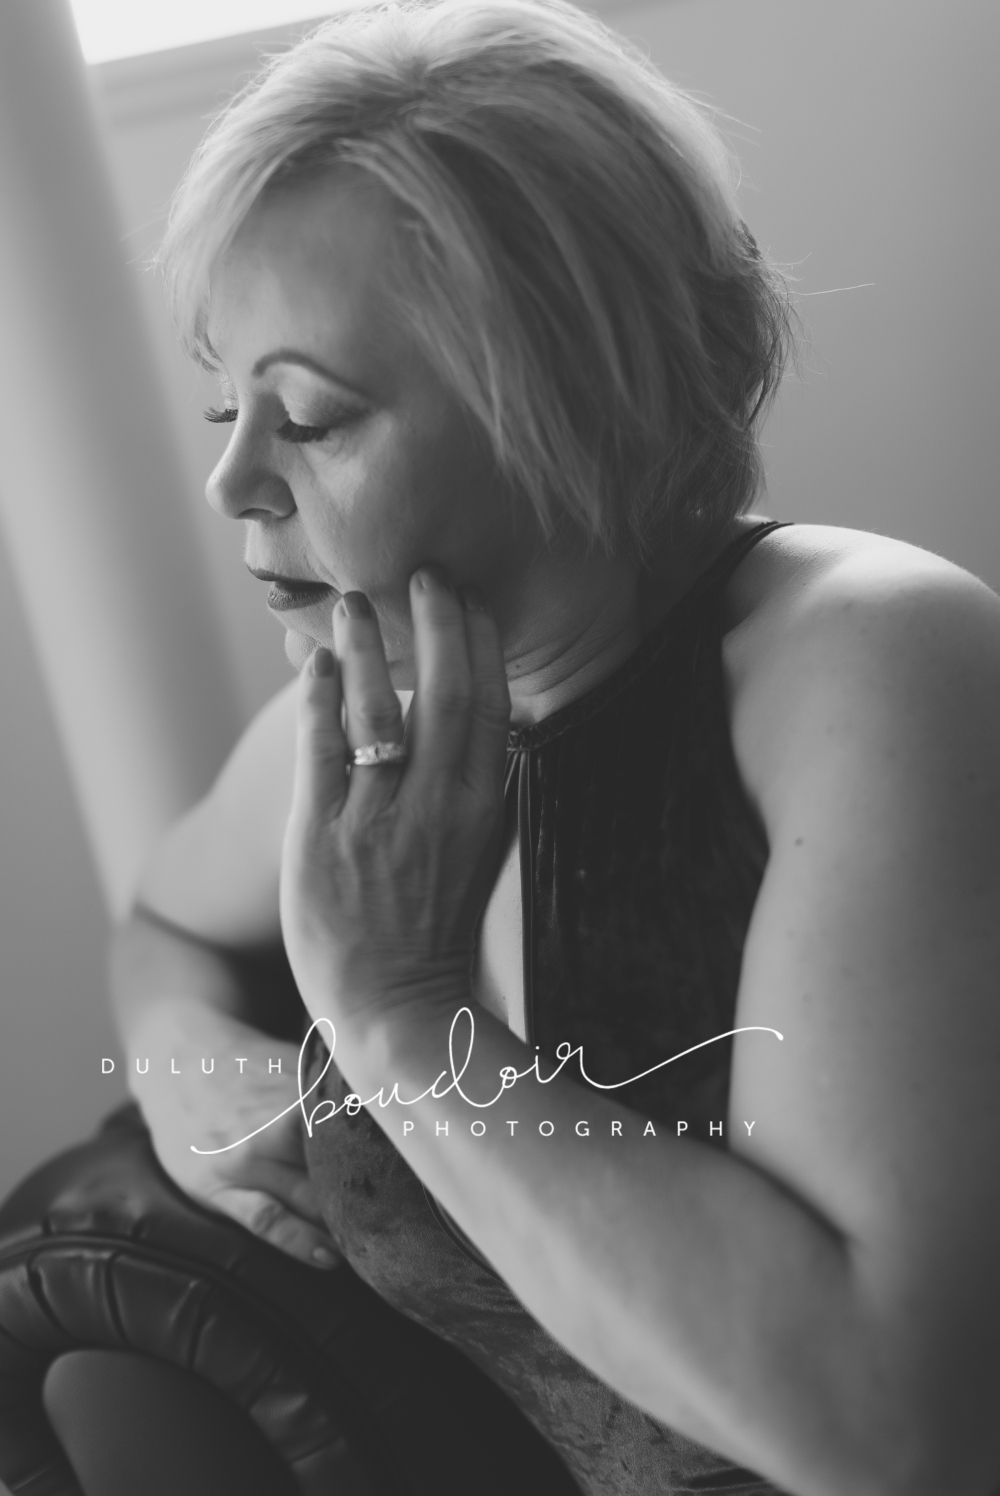 duluth_boudoir_photography_julie_20